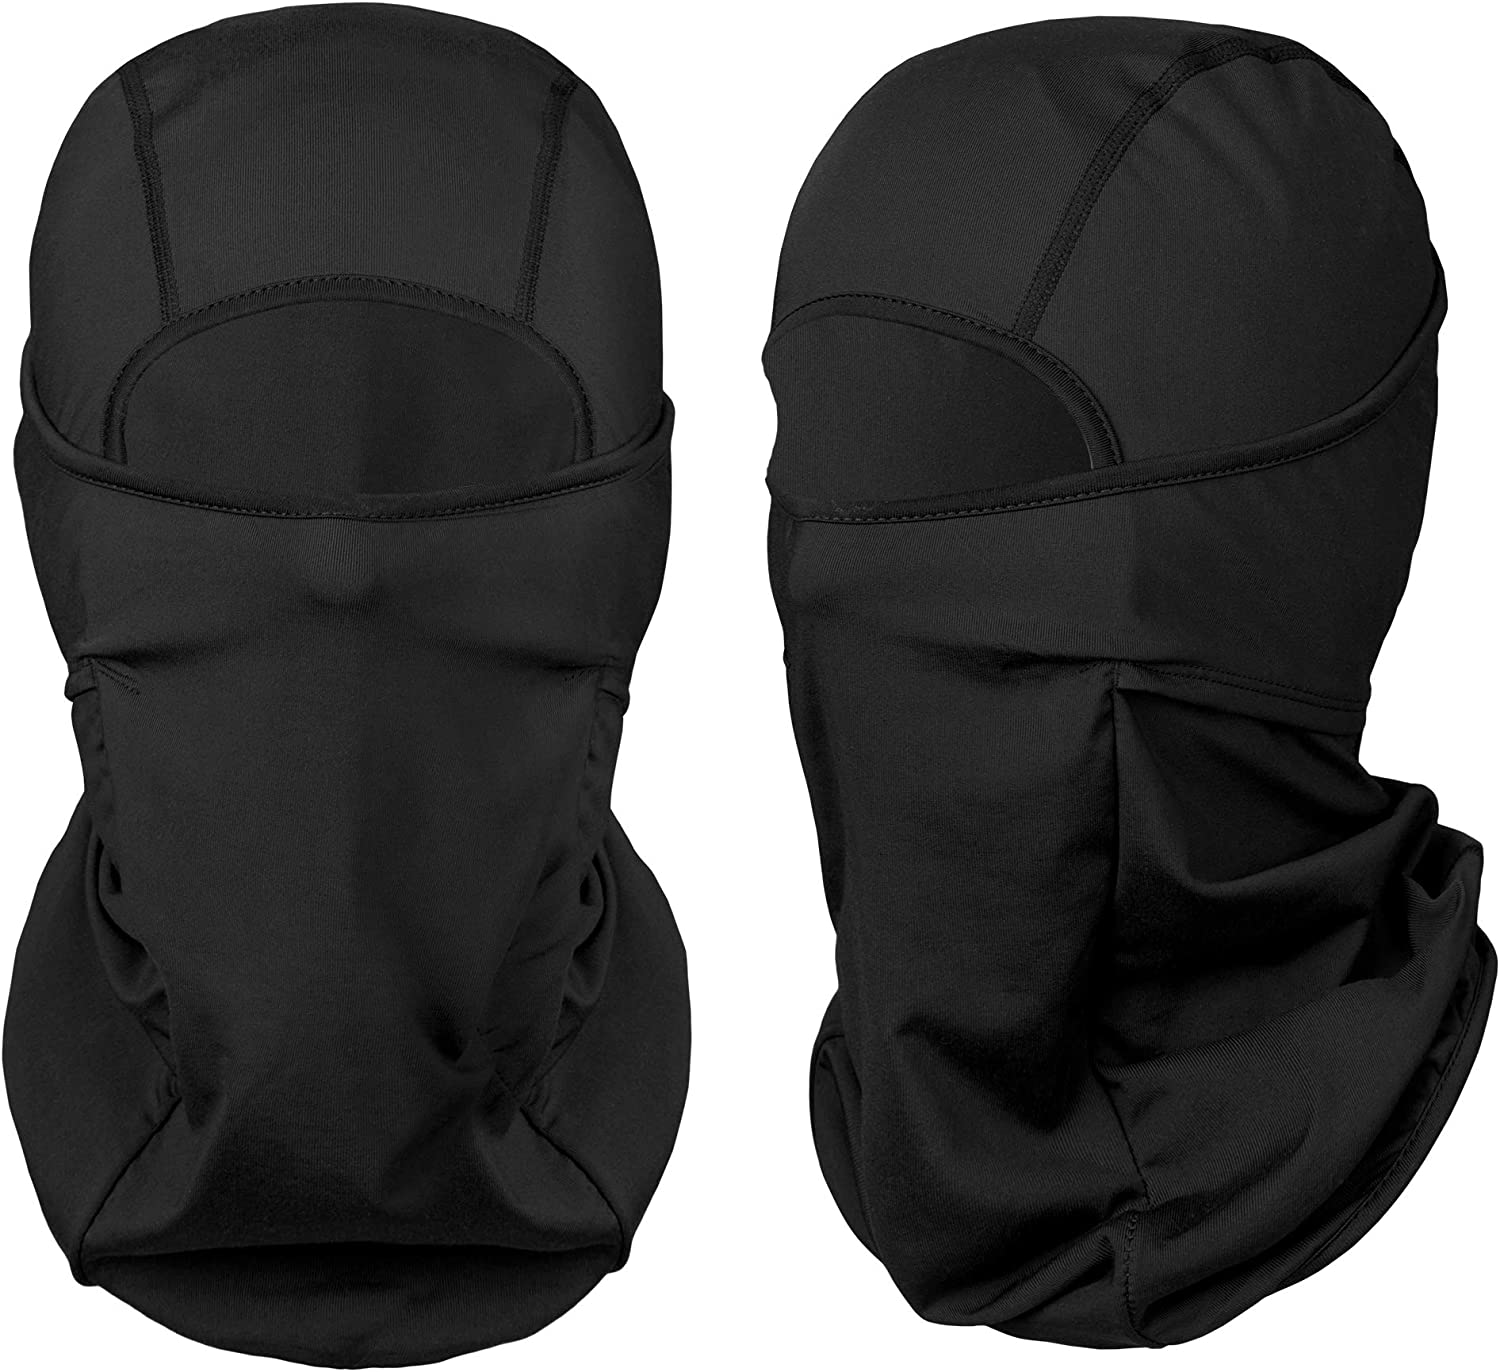 The Friendly Swede Balaclava Face Mask - Ski and Winter Sports Headwear, Neck  Gaiter and Motorcycle Helmet Liner (Standard/Nordic / Arctic) - [1-Pack or  2-Pack]: Amazon.co.uk: Clothing